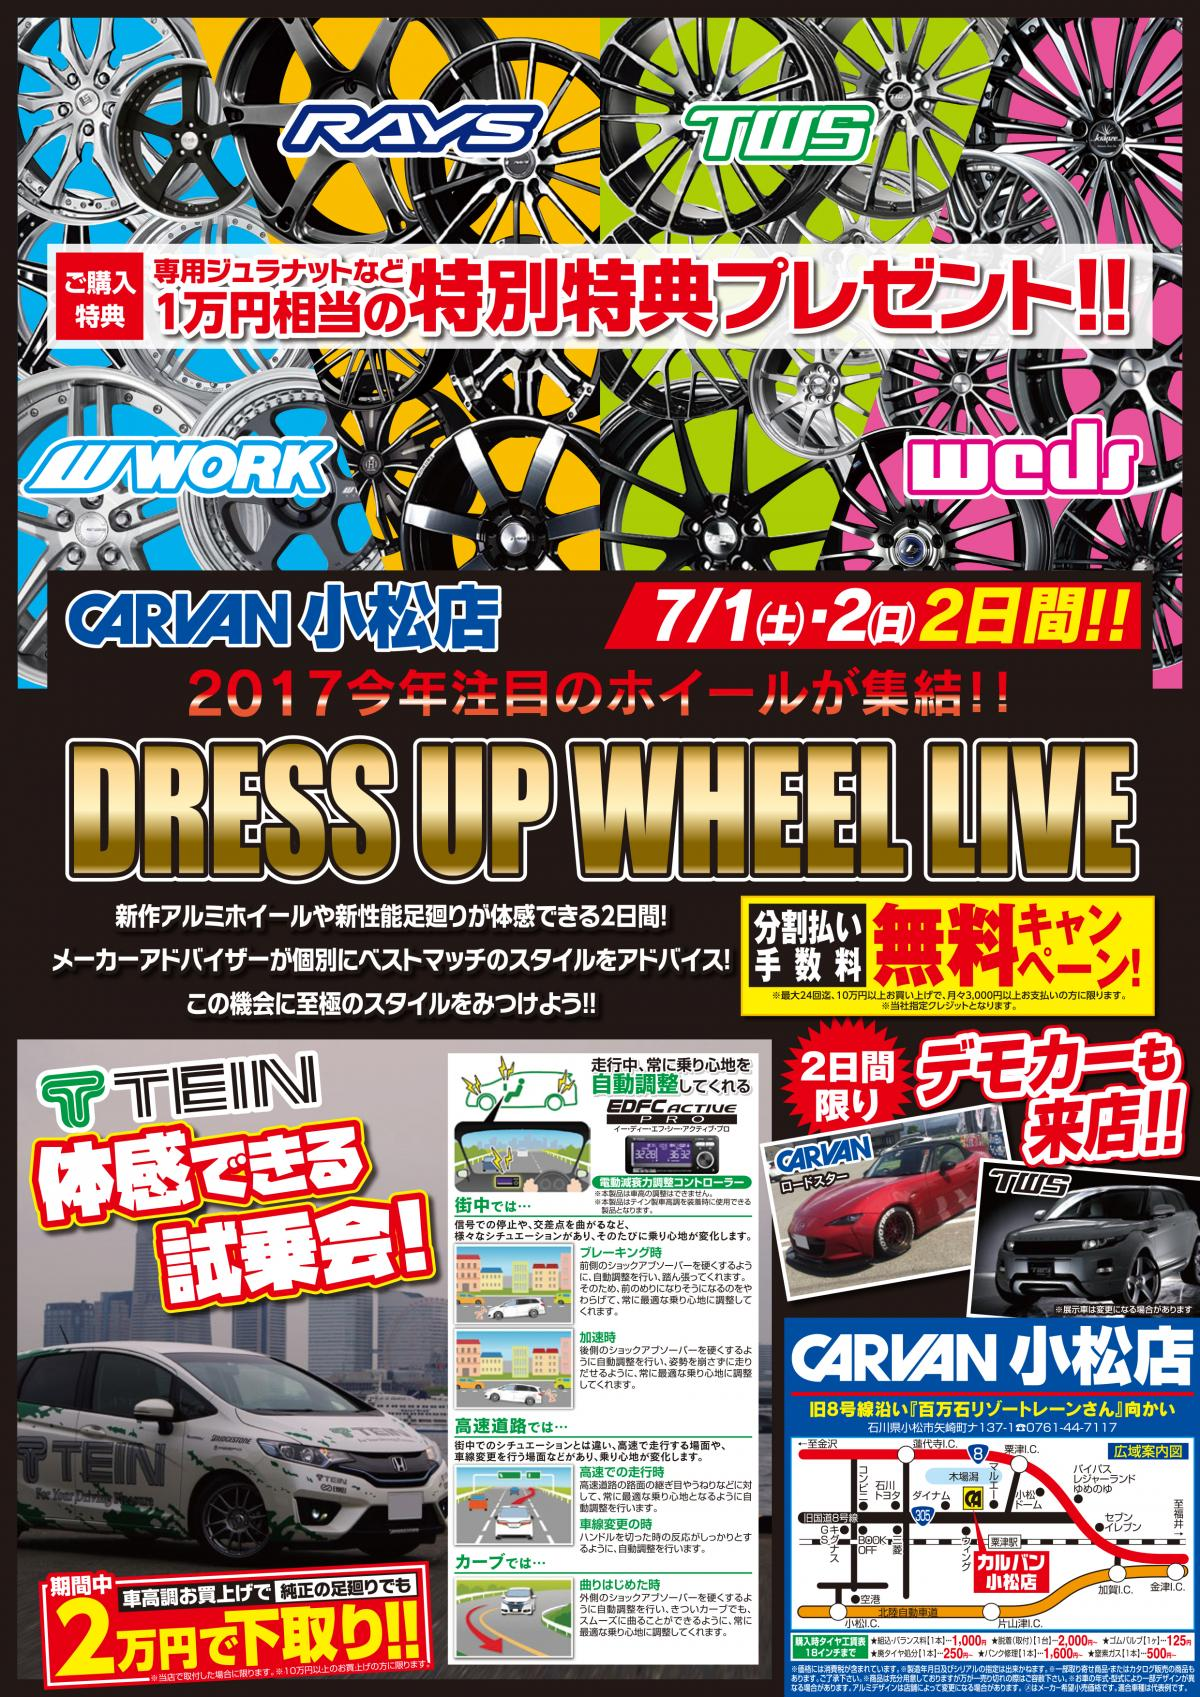 DRESS UP WHEEL LIVE